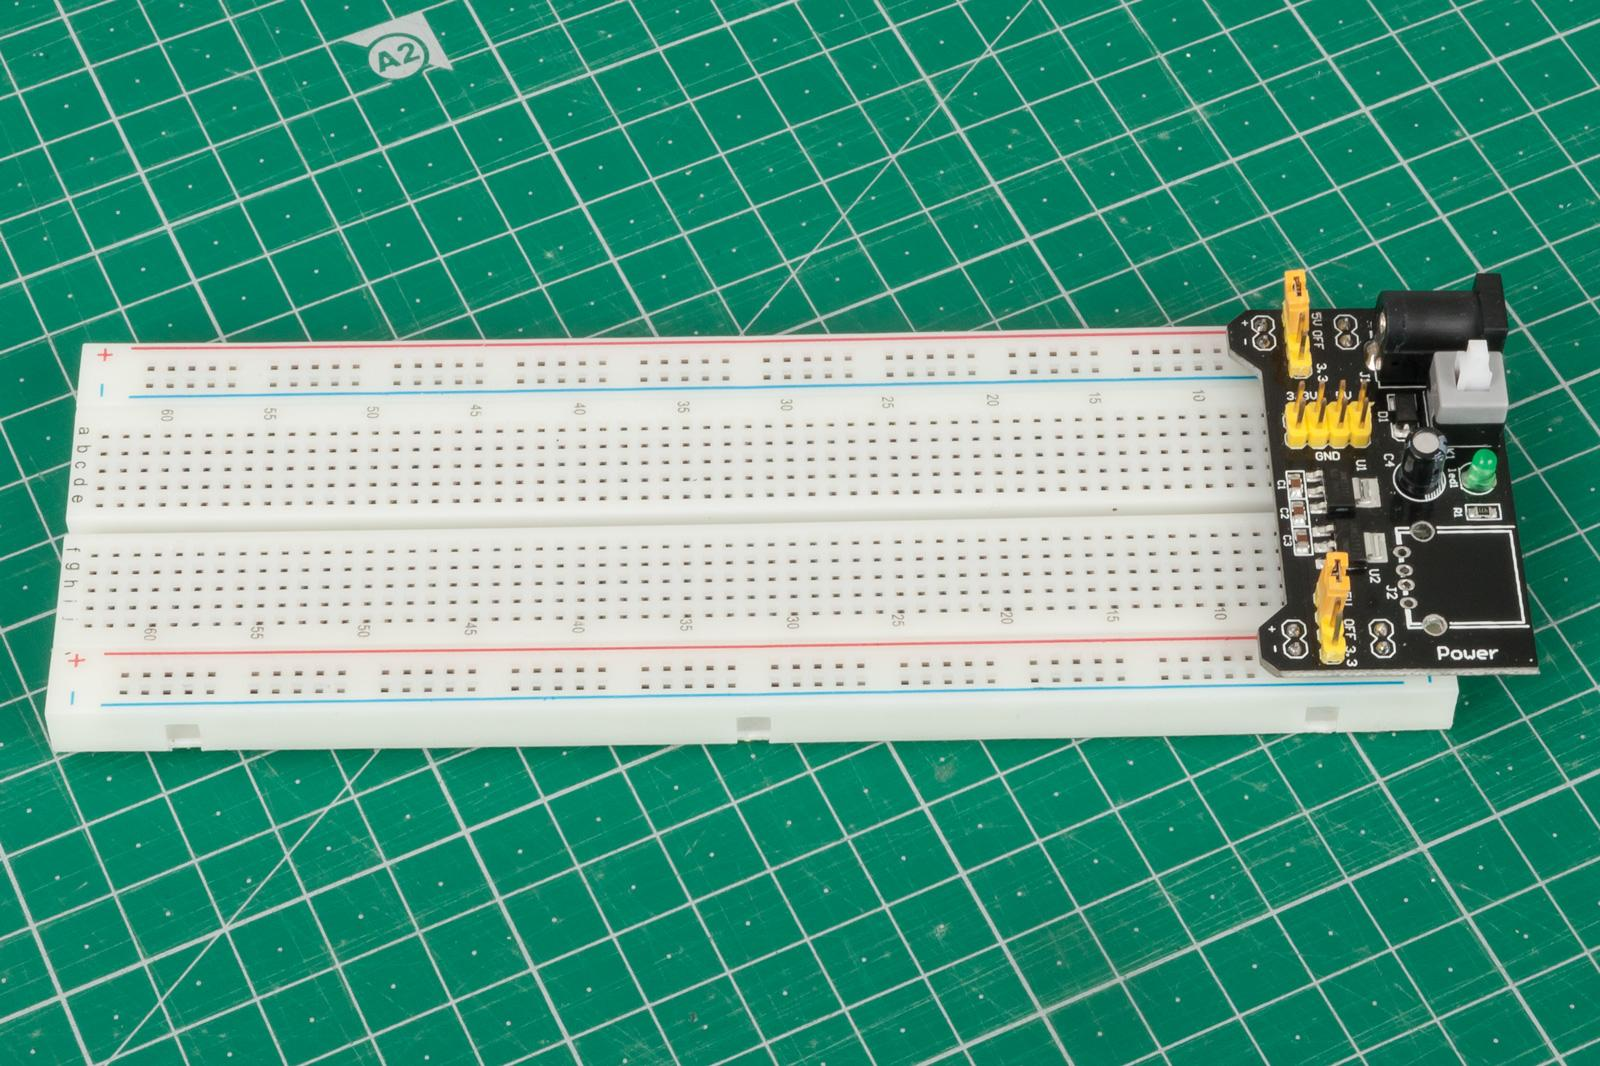 power to breadboard